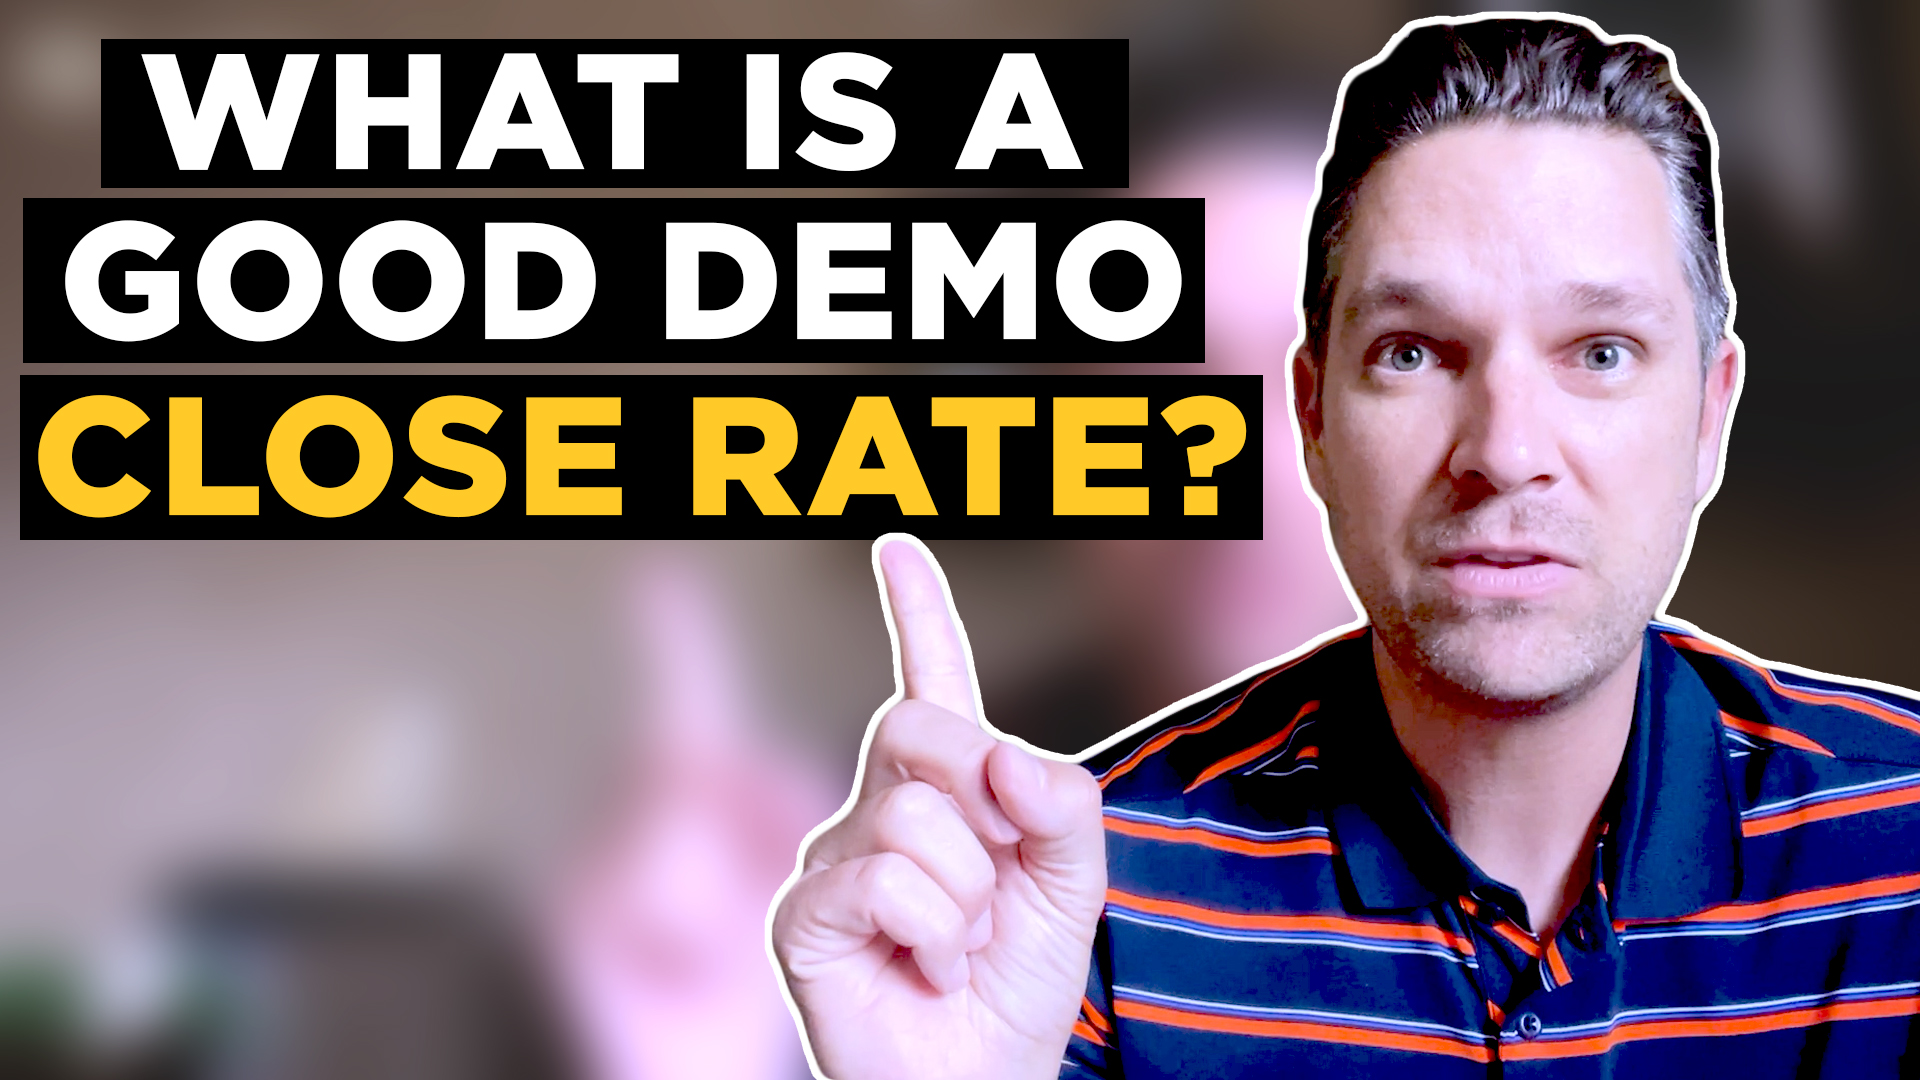 What is a good demo close rate